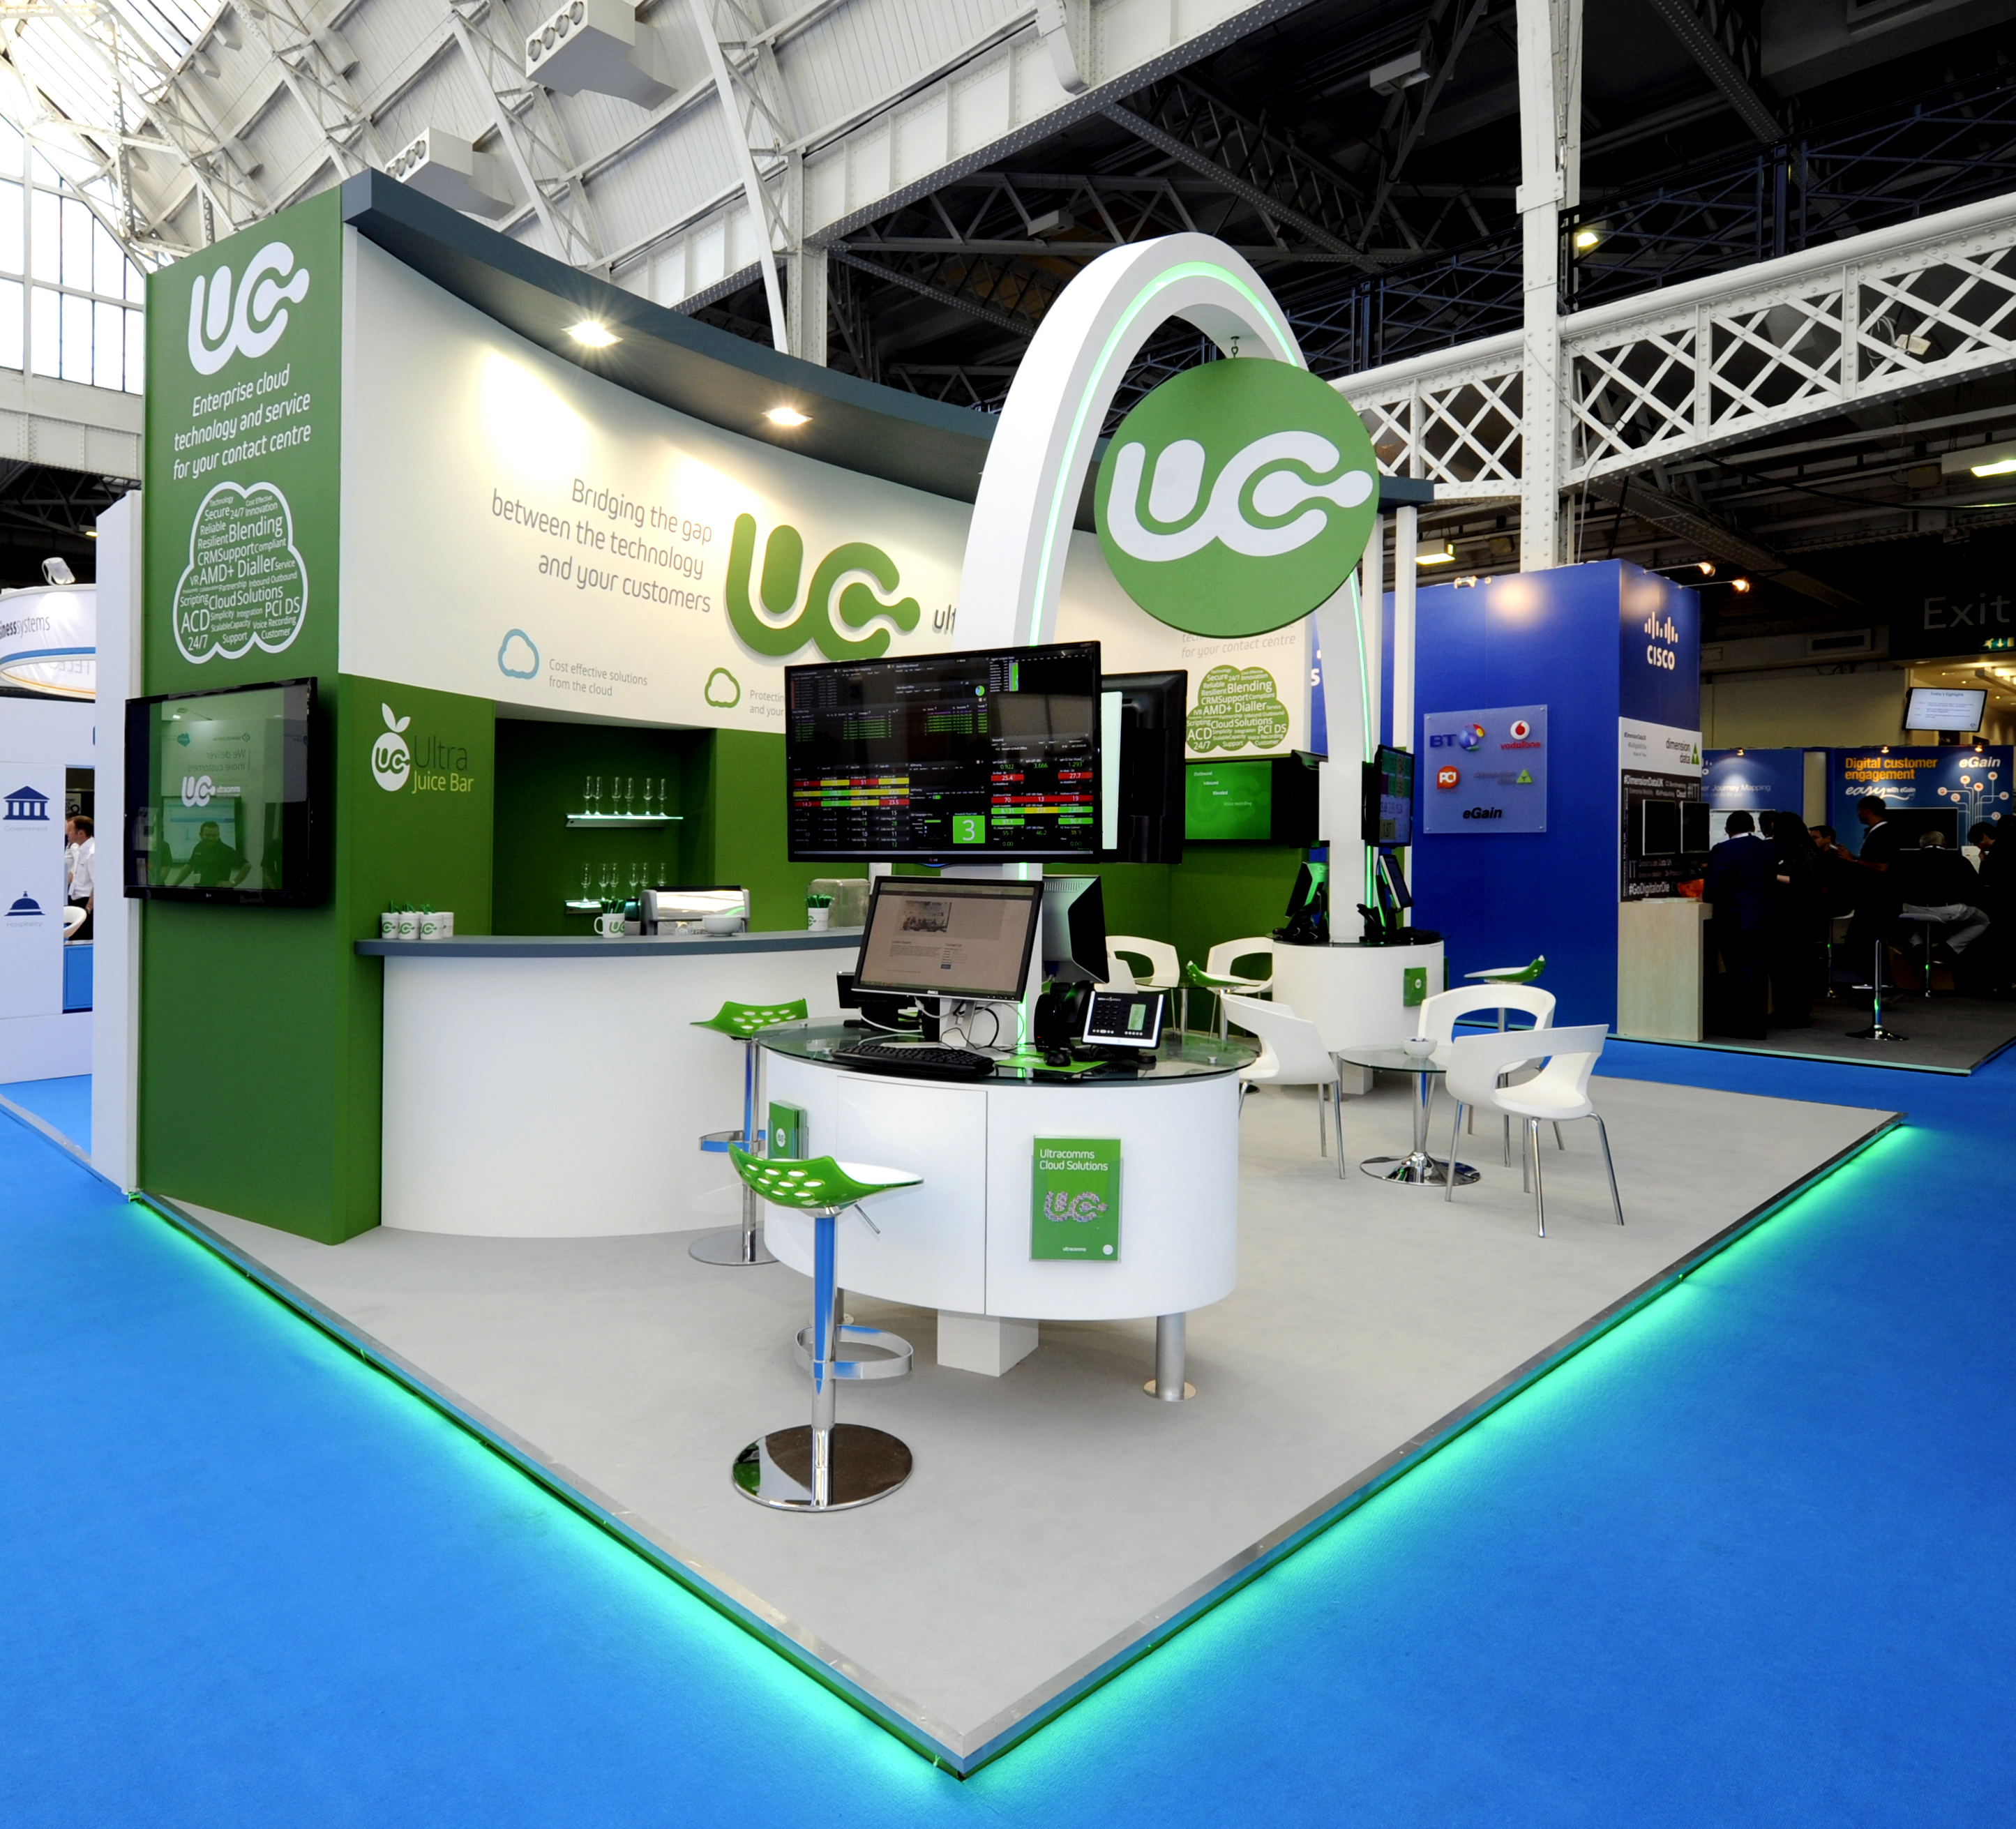 Exhibition Stand Design Companies Uk : Exhibition stand design inspiration